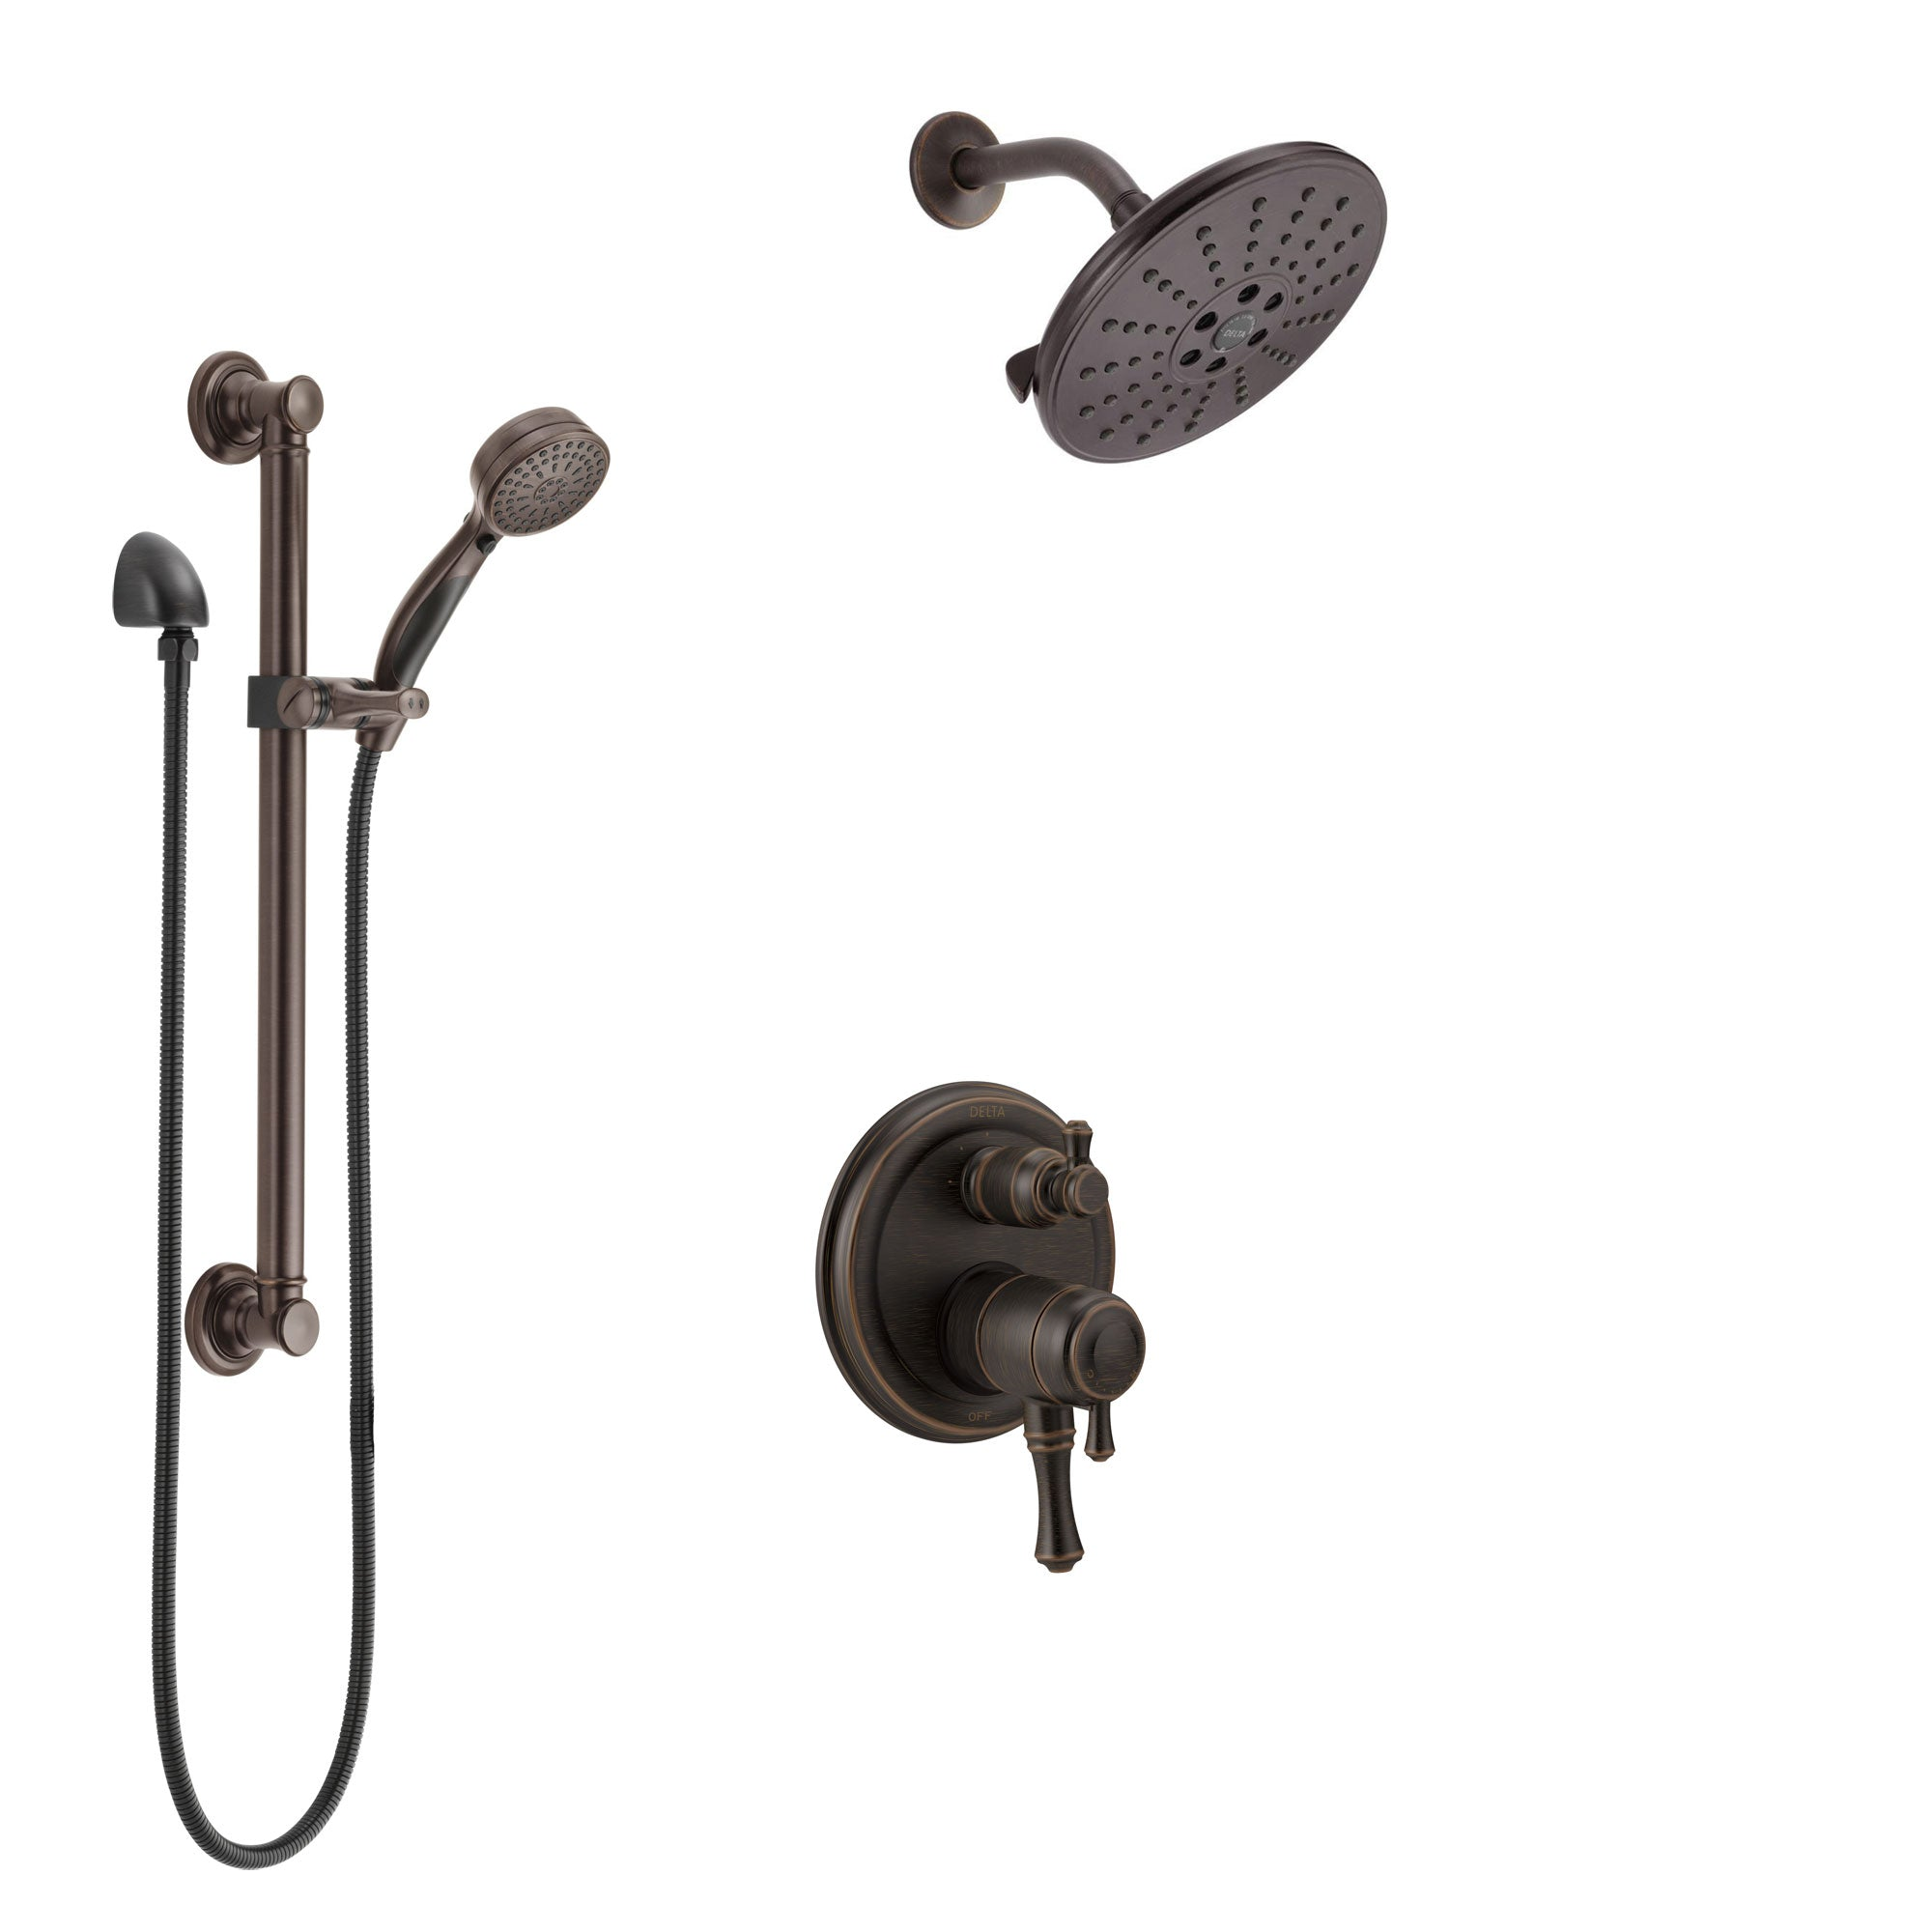 Delta Cassidy Venetian Bronze Shower System with Dual Control Handle, Integrated Diverter, Showerhead, and Hand Shower with Grab Bar SS27897RB11